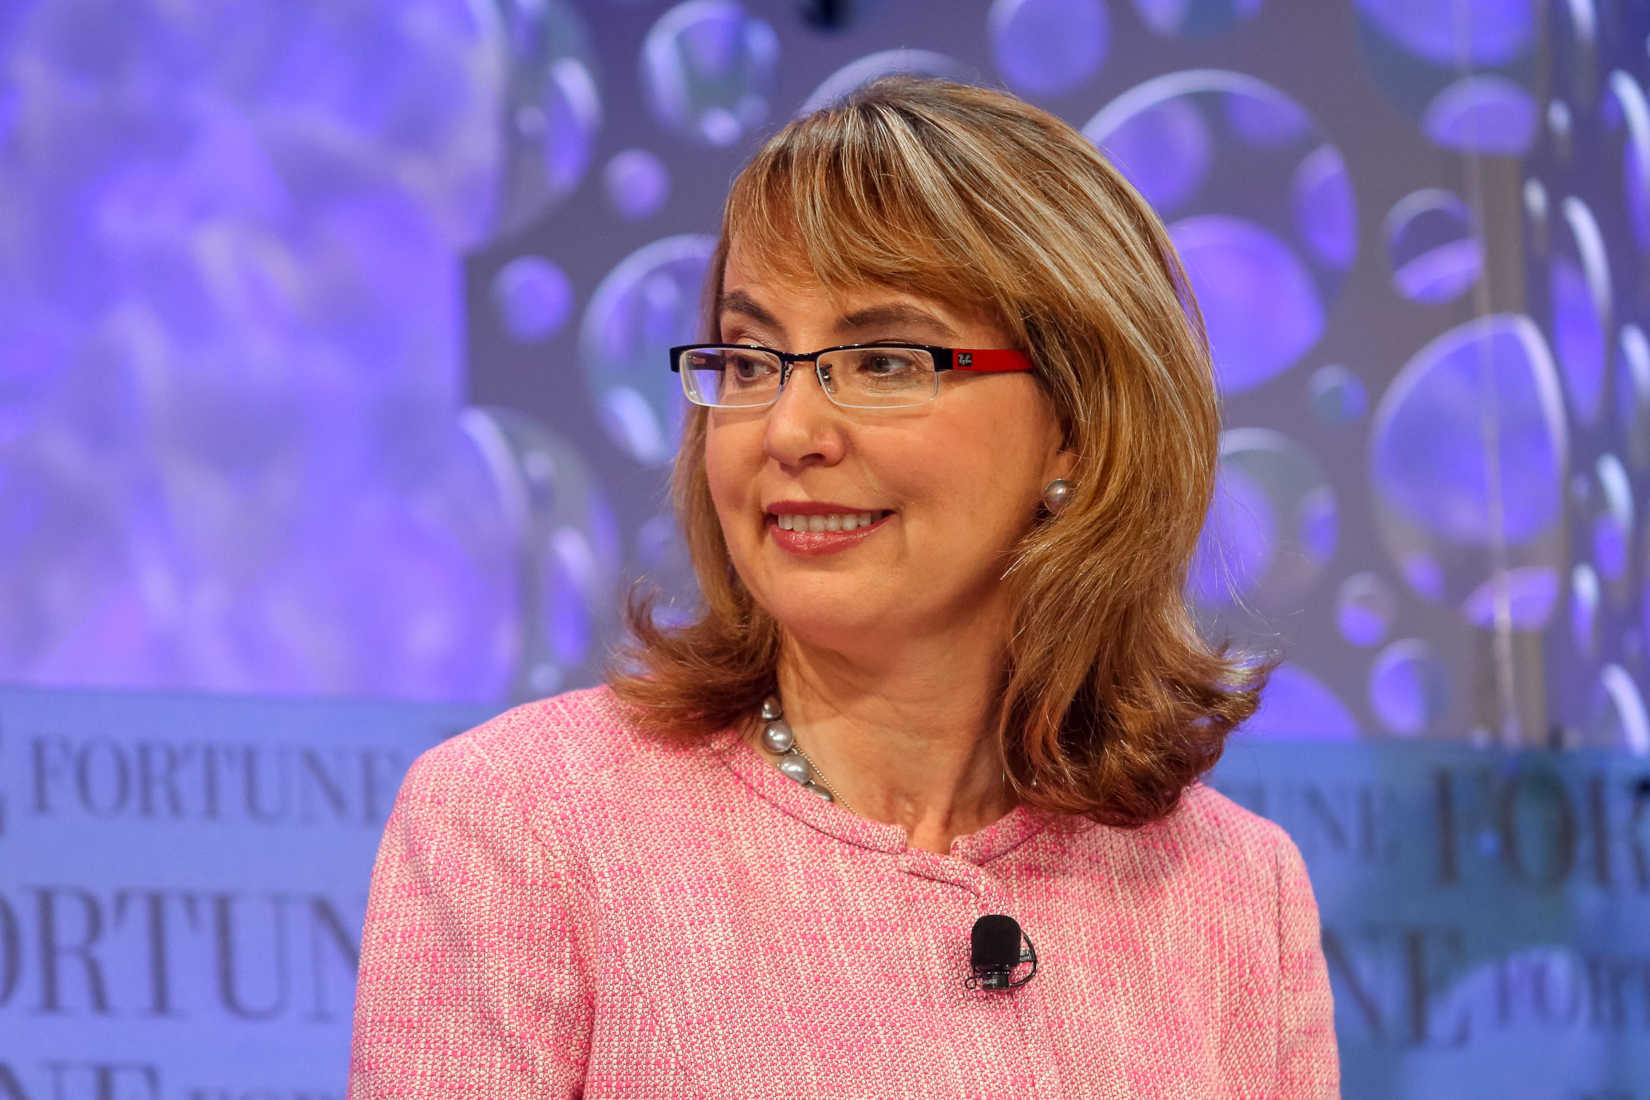 Gabby Giffords Launches New Gun Control Group in Colorado